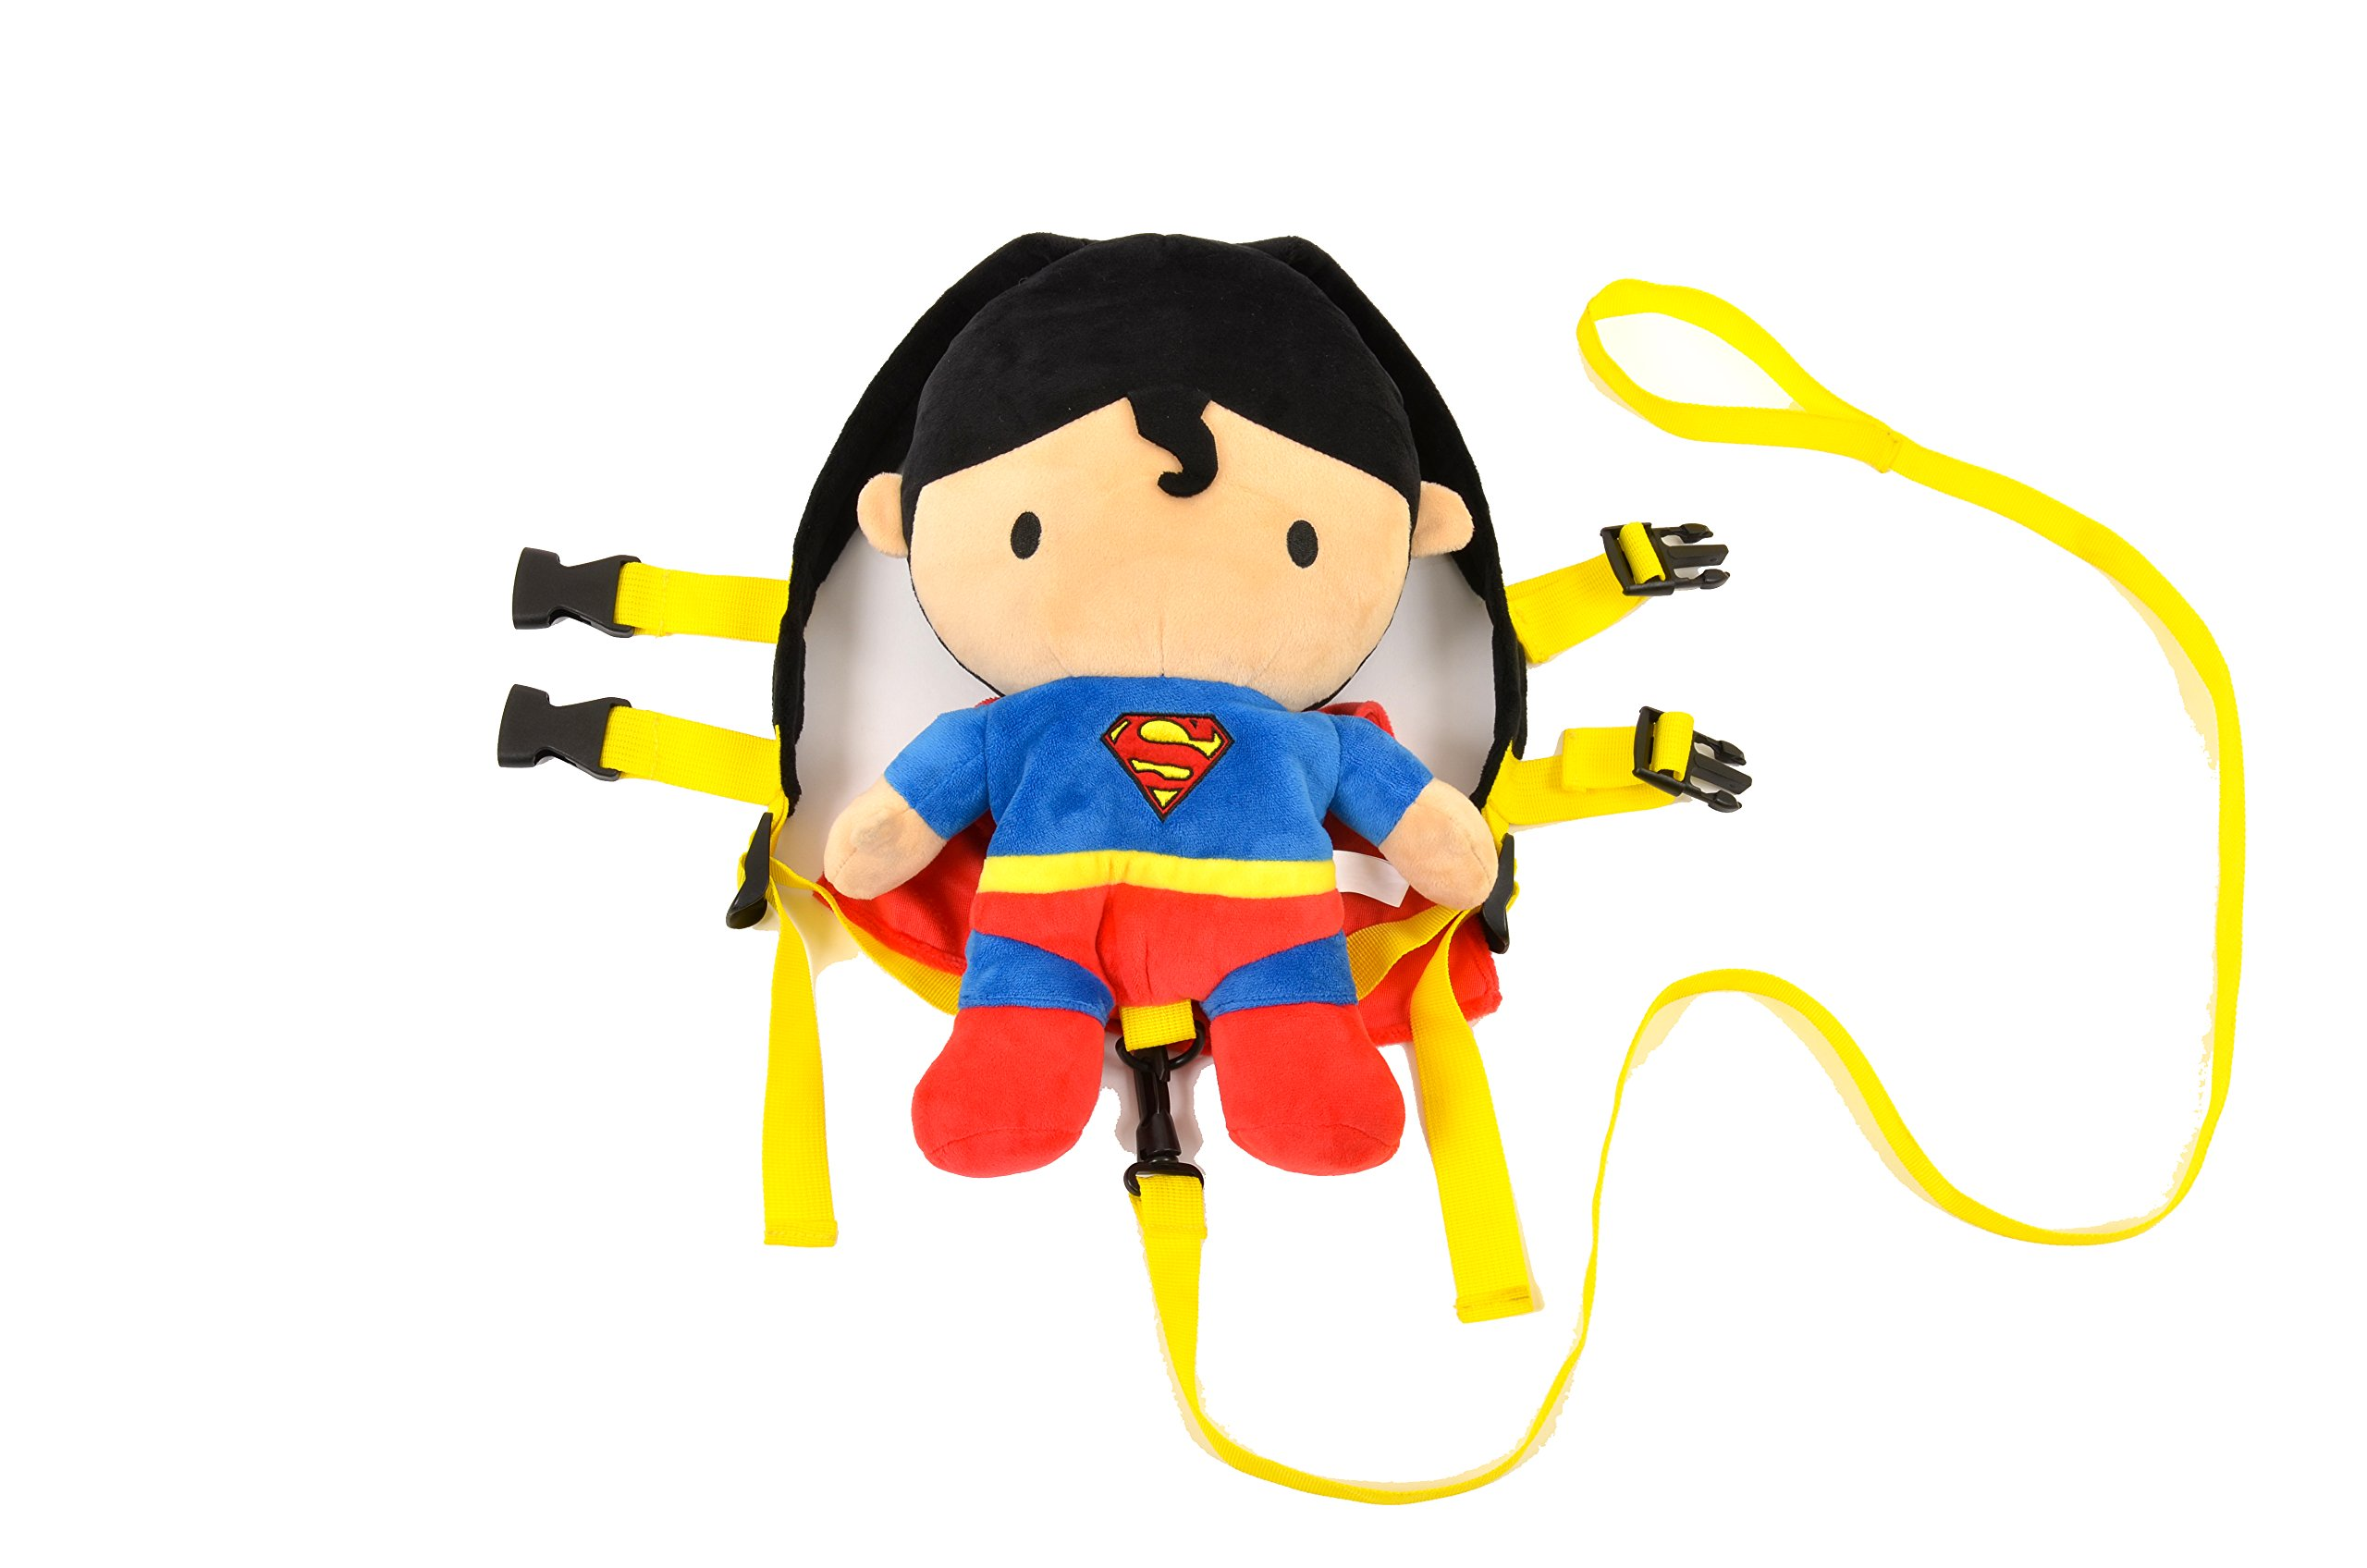 KidsEmbrace Superman Safety Harness Backpack, DC Comics 2 in 1 Harness Buddy, Red by KidsEmbrace (Image #2)